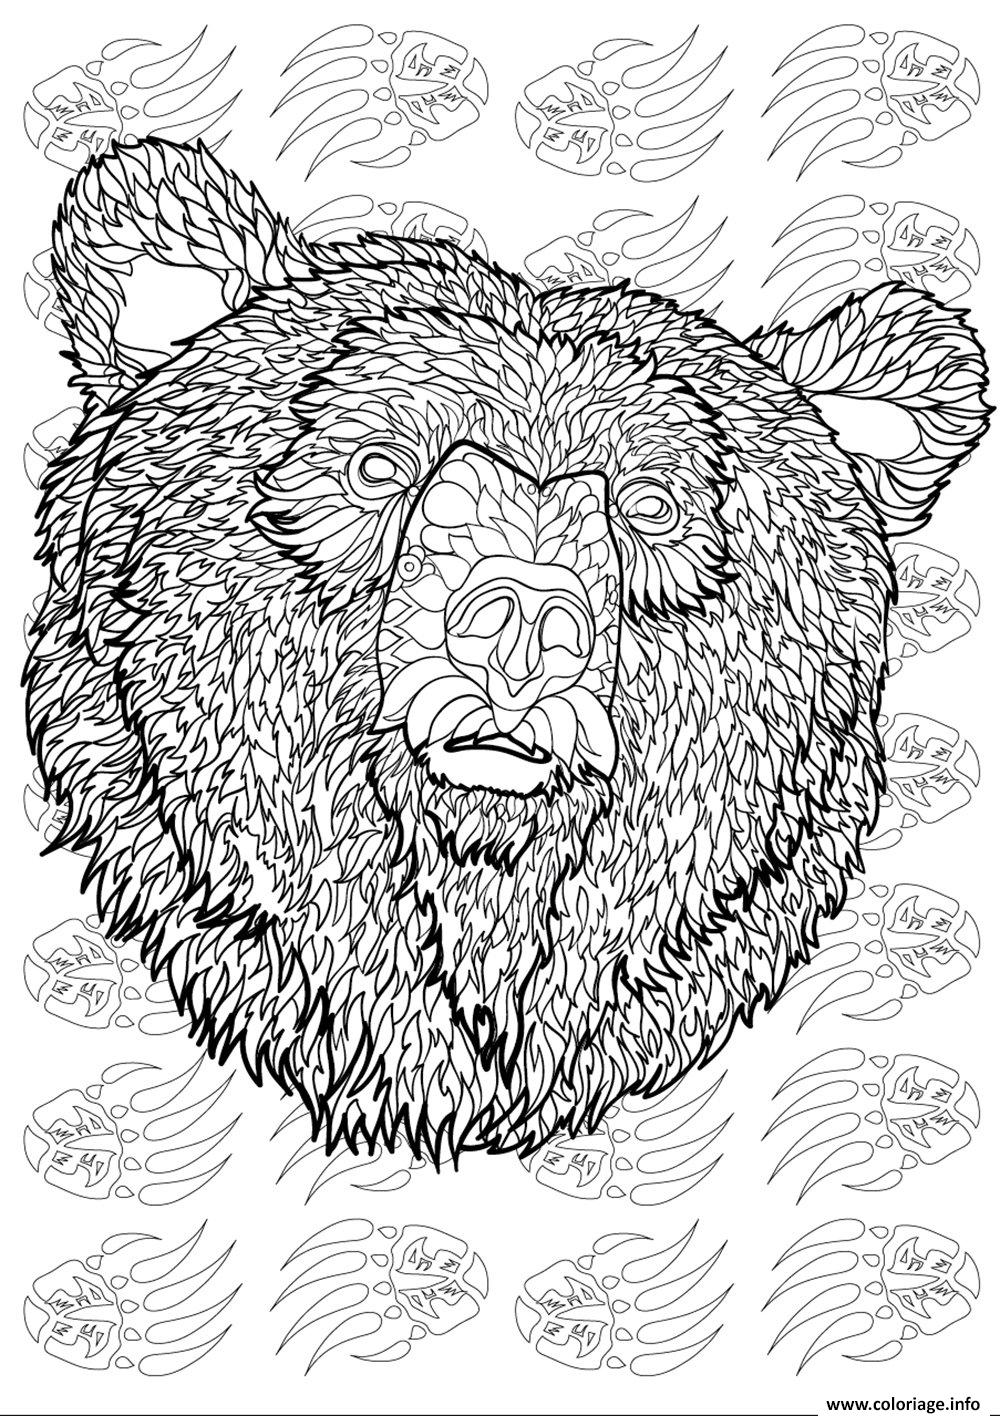 Coloriage ours adulte animaux antistress difficile dessin - Coloriage anti stress a imprimer ...